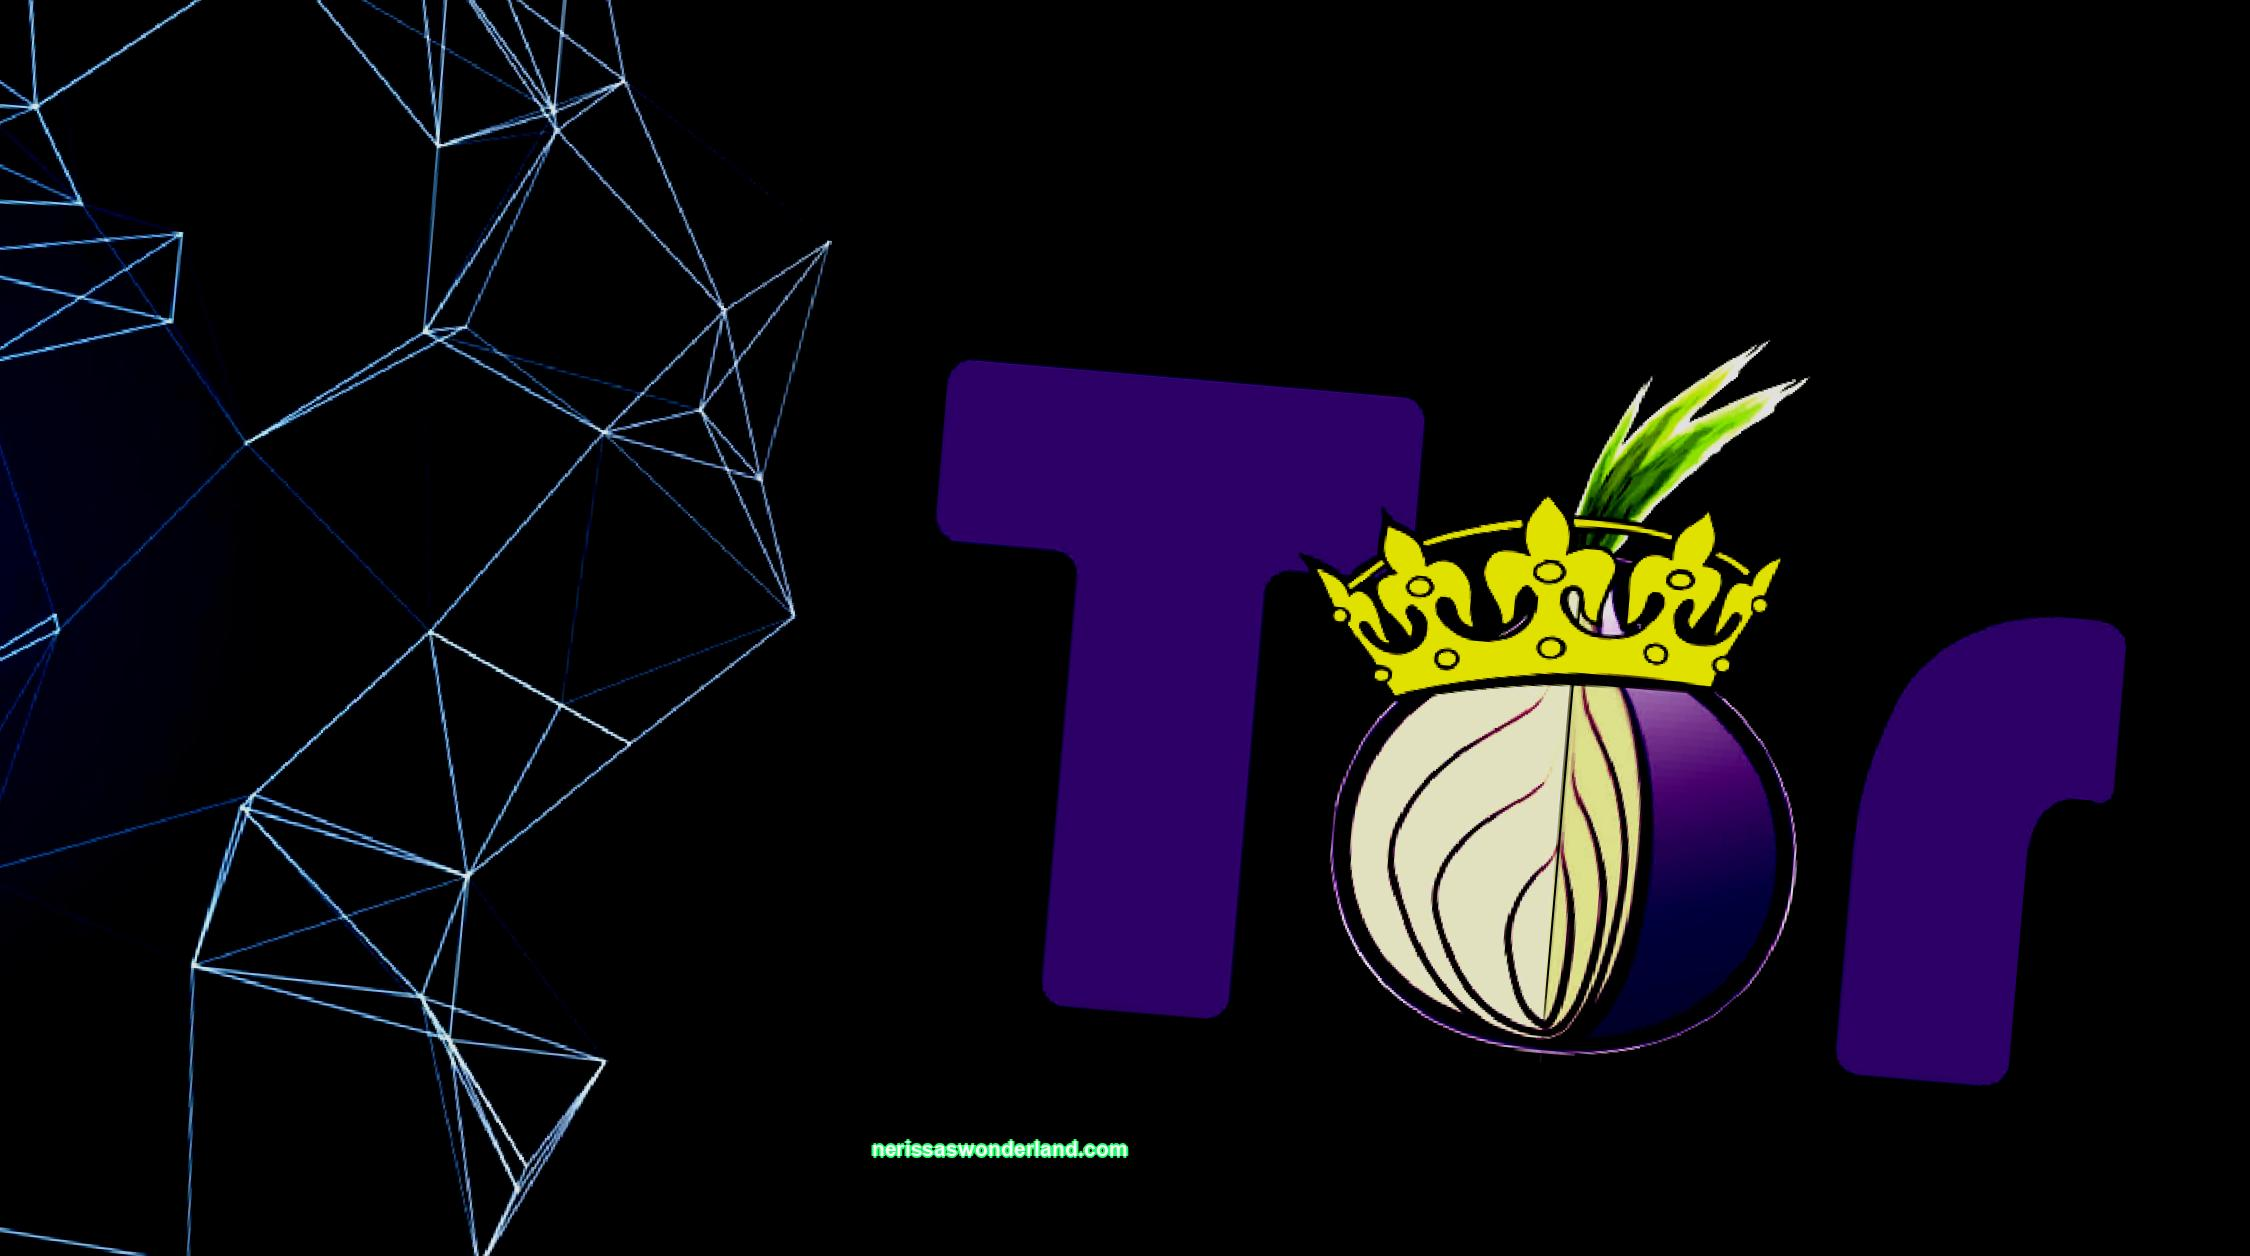 Links to sites for the Tor Browser